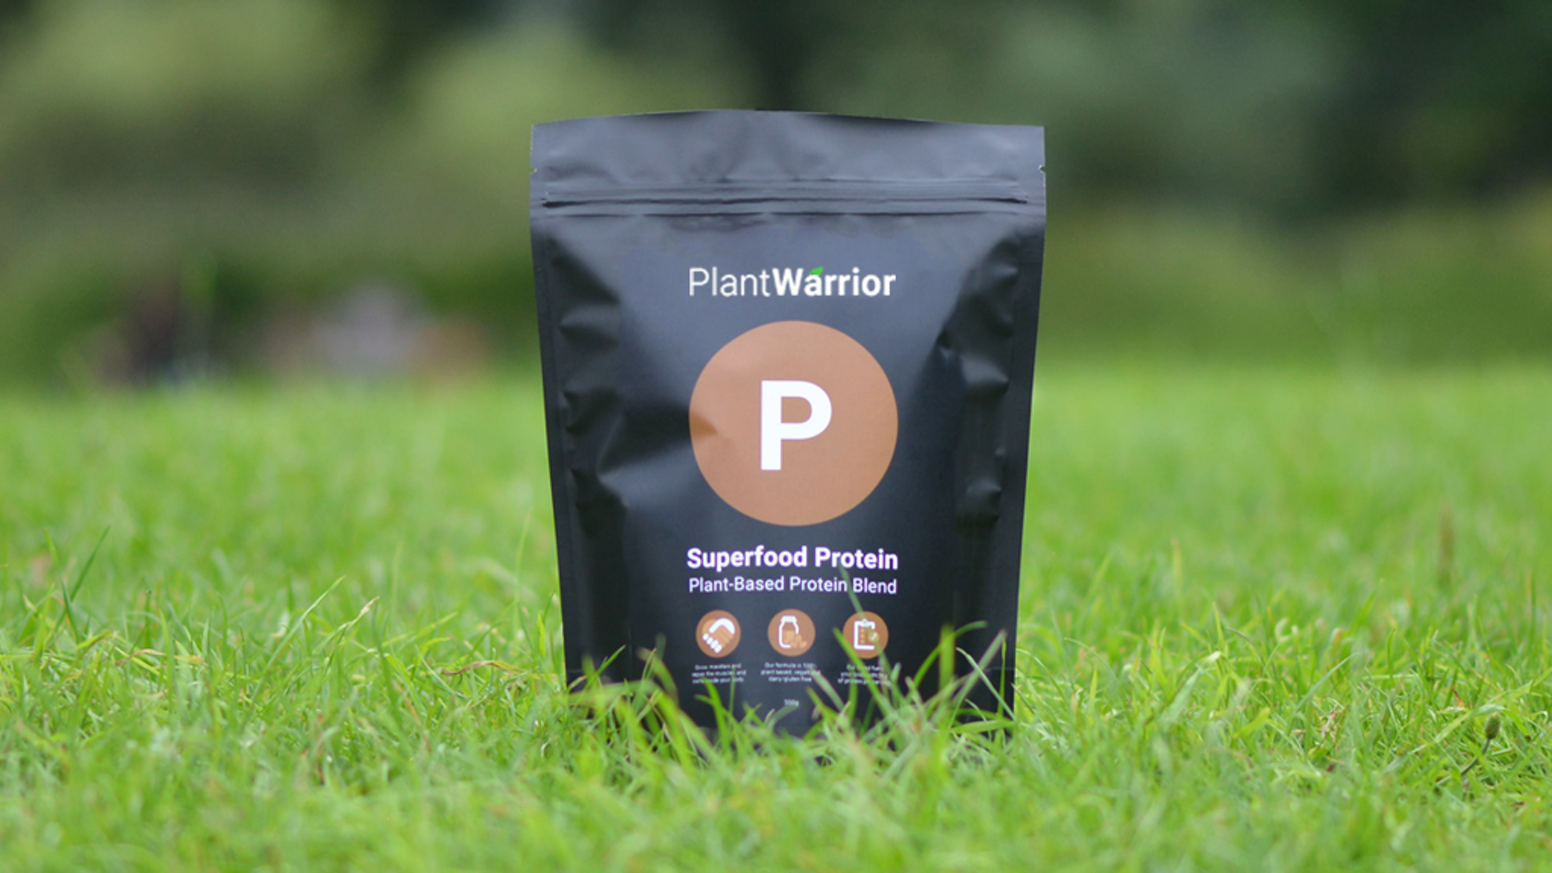 A 100% Vegan and Plant-Based Protein Powder, made from a natural blend of Chia, Rice, Quinoa, Pea and Hemp. Become a Plant Warrior.